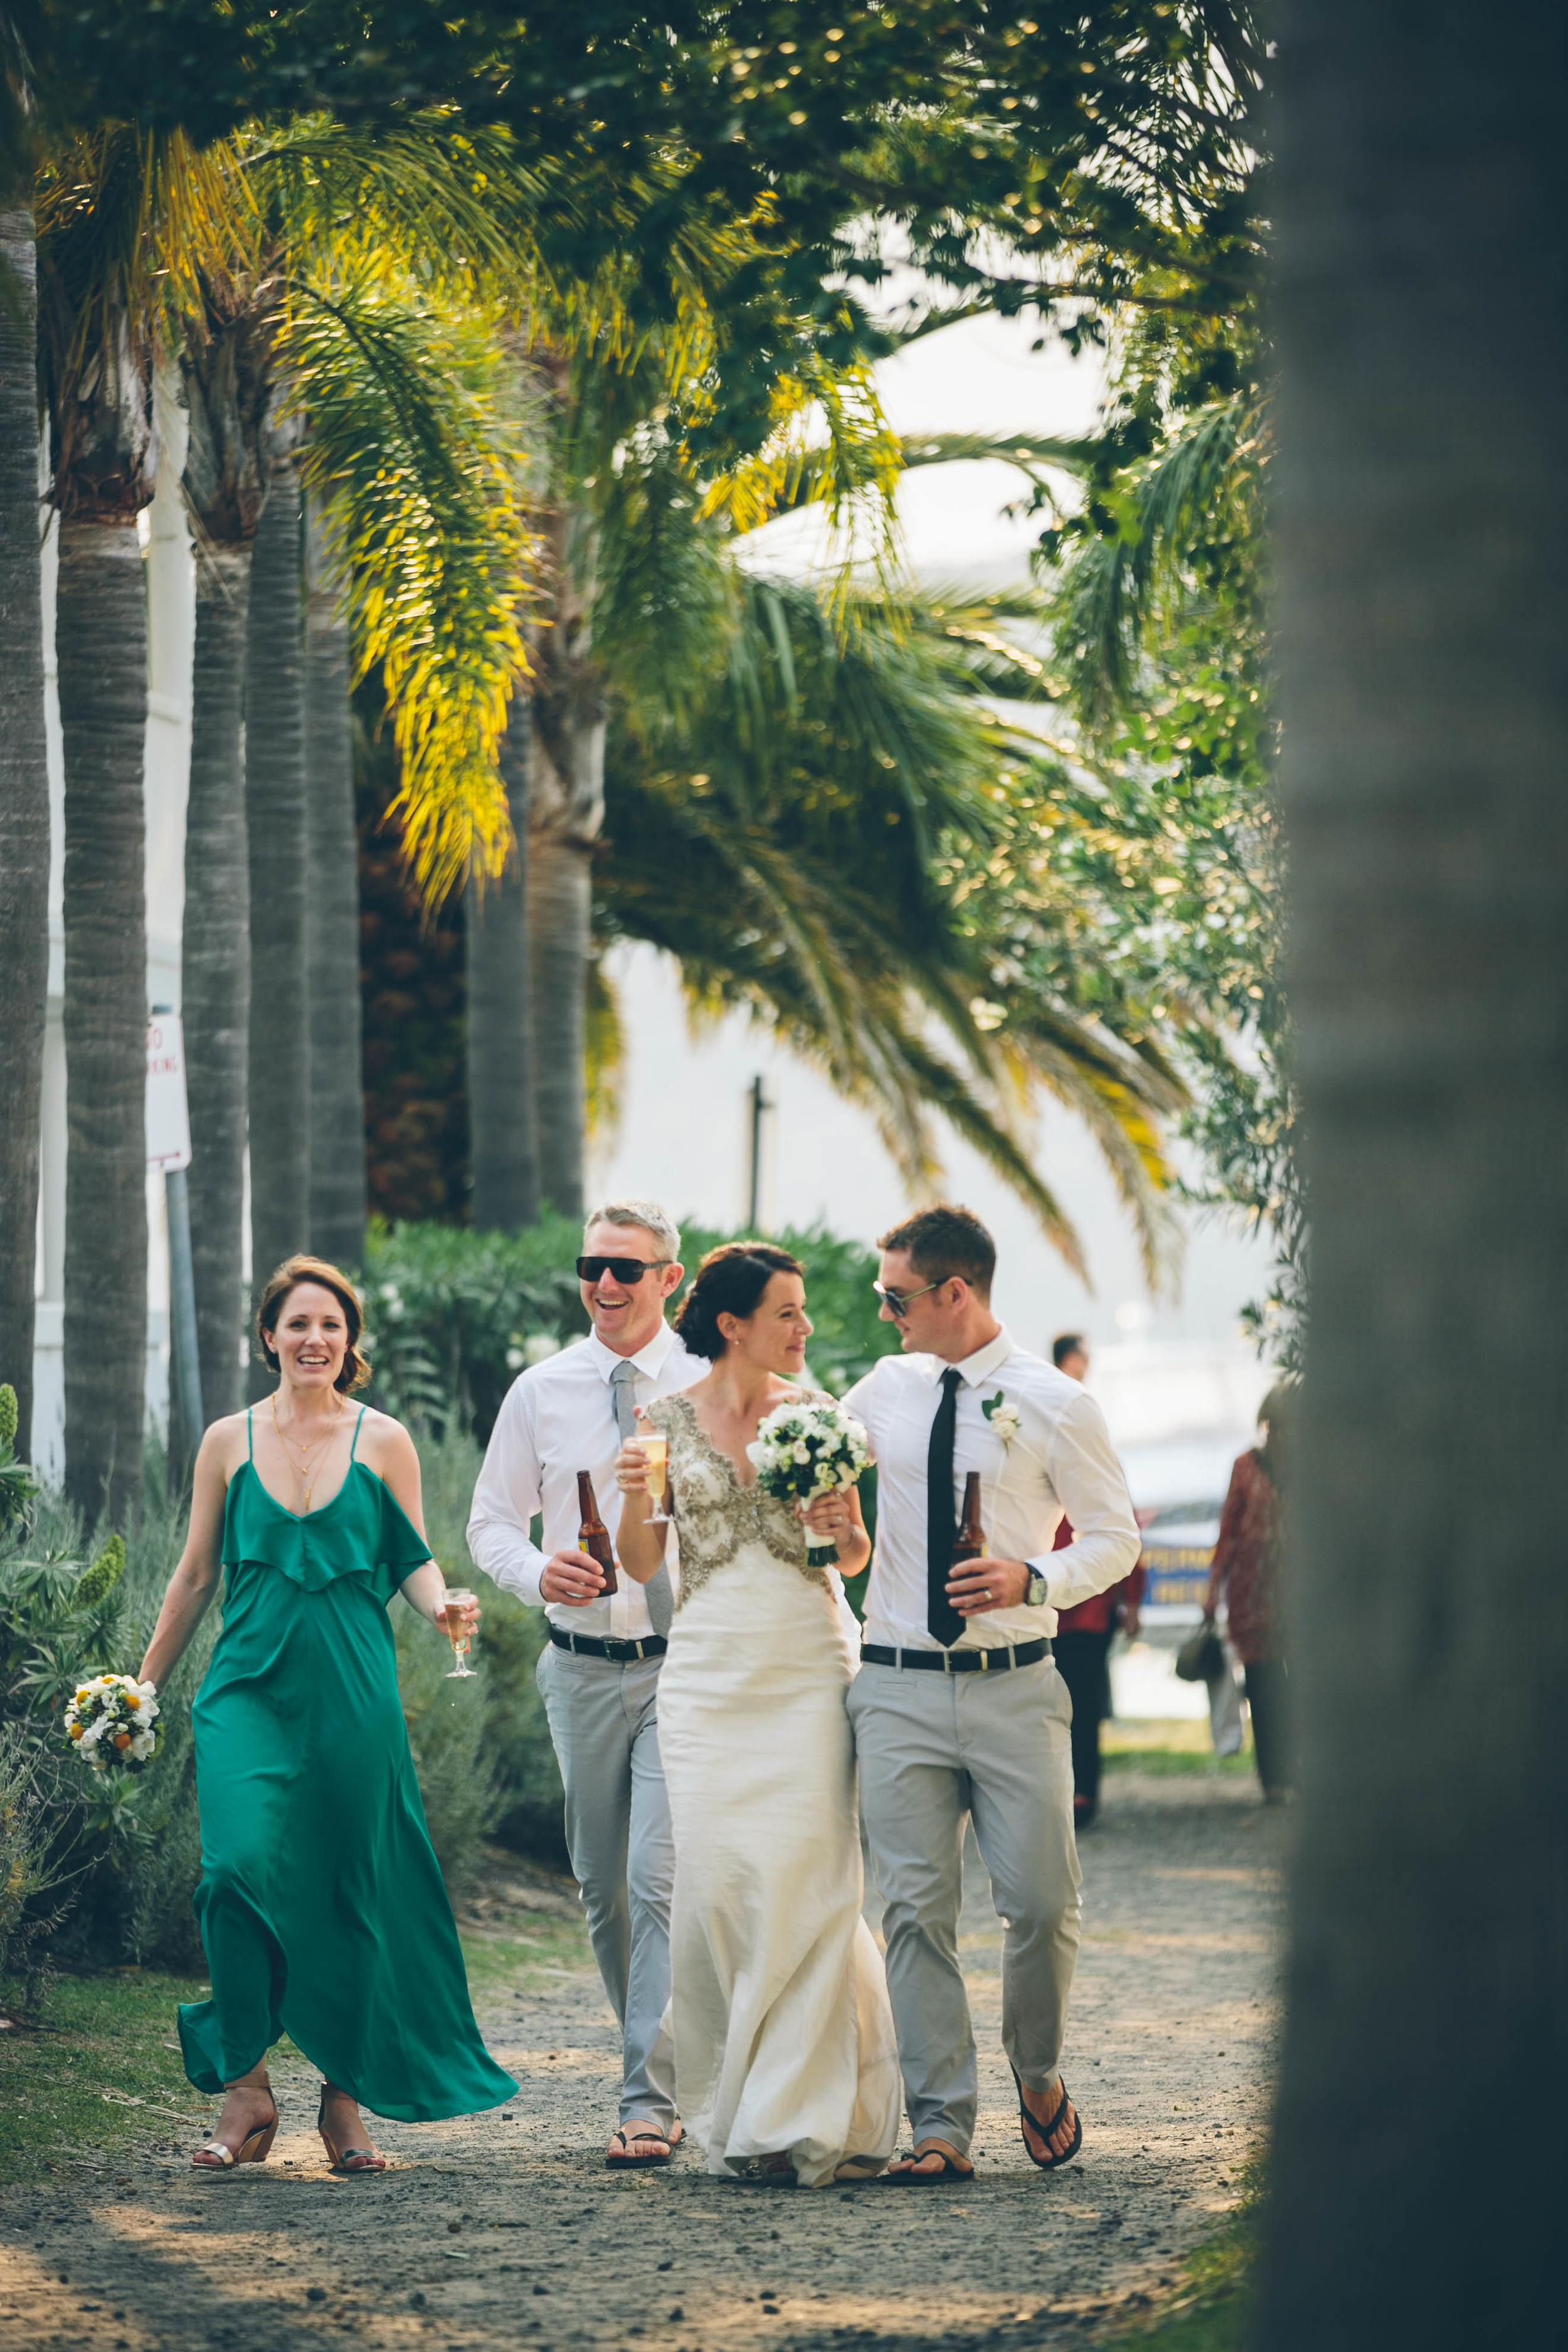 Maddy and Dan wedding, The Boathouse Palm Beach by Milton Gan Photography 082.jpg